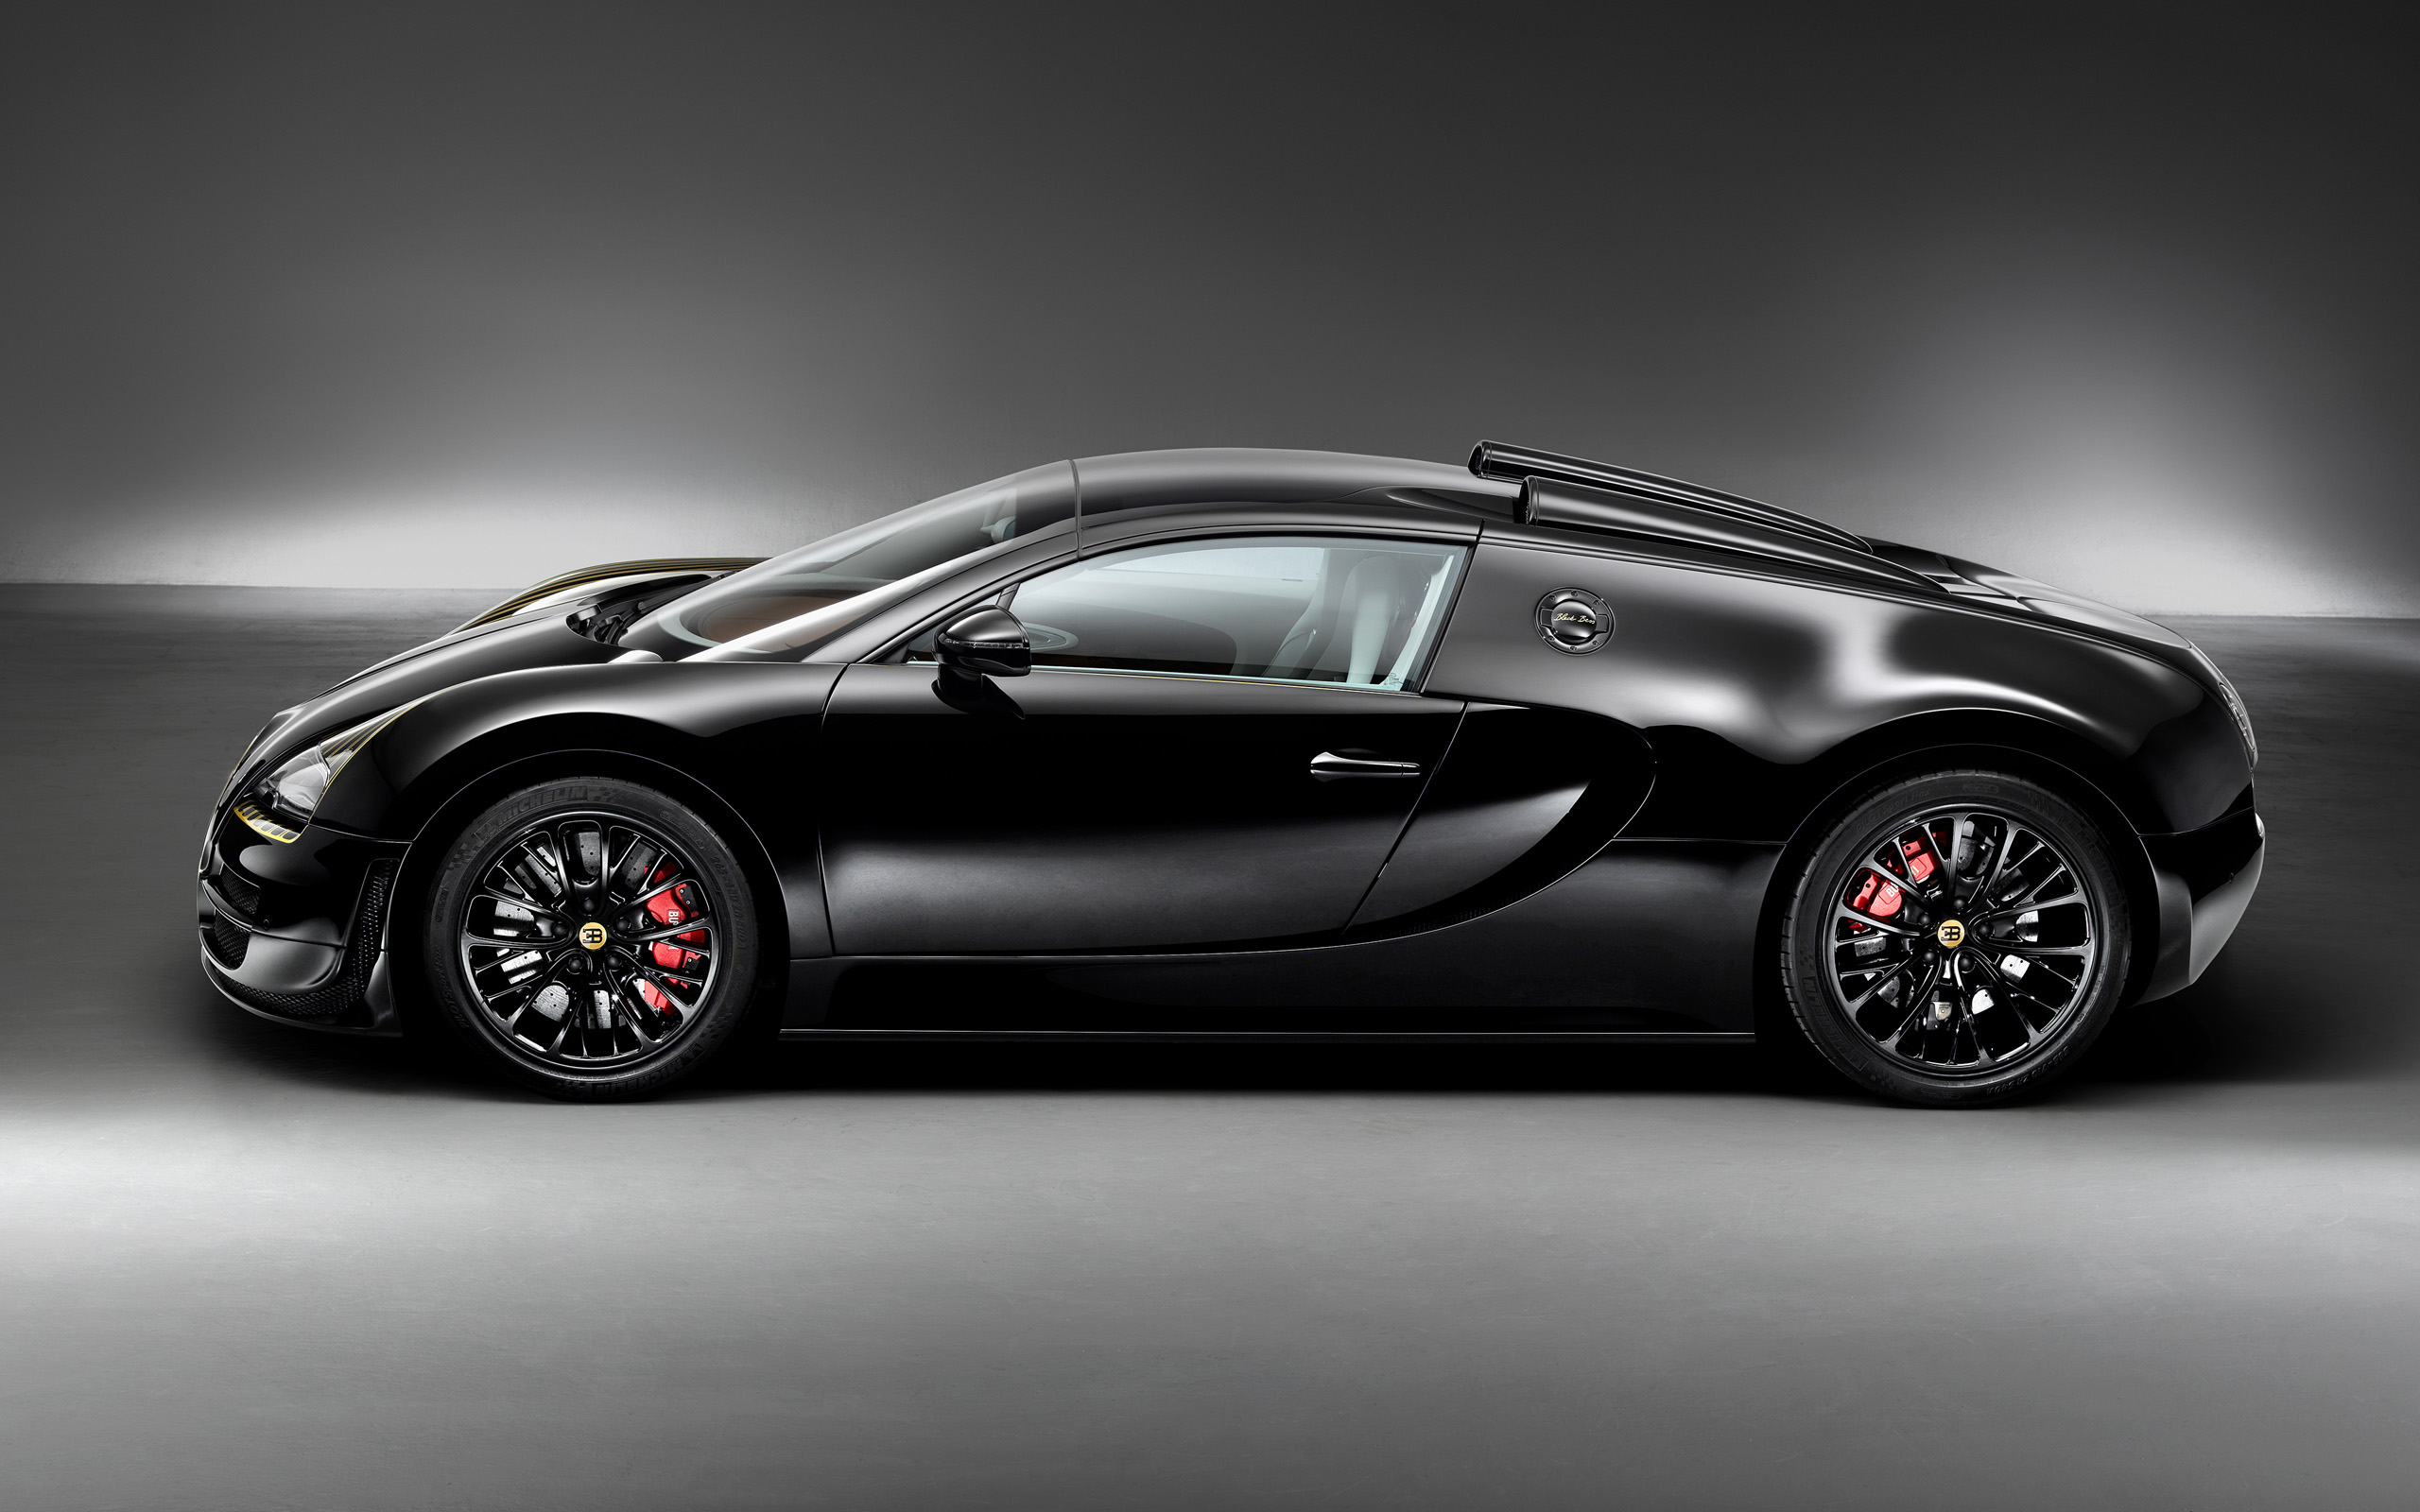 2014 bugatti veyron grand sport vitesse legend black bess 3 wallpaper hd car wallpapers. Black Bedroom Furniture Sets. Home Design Ideas